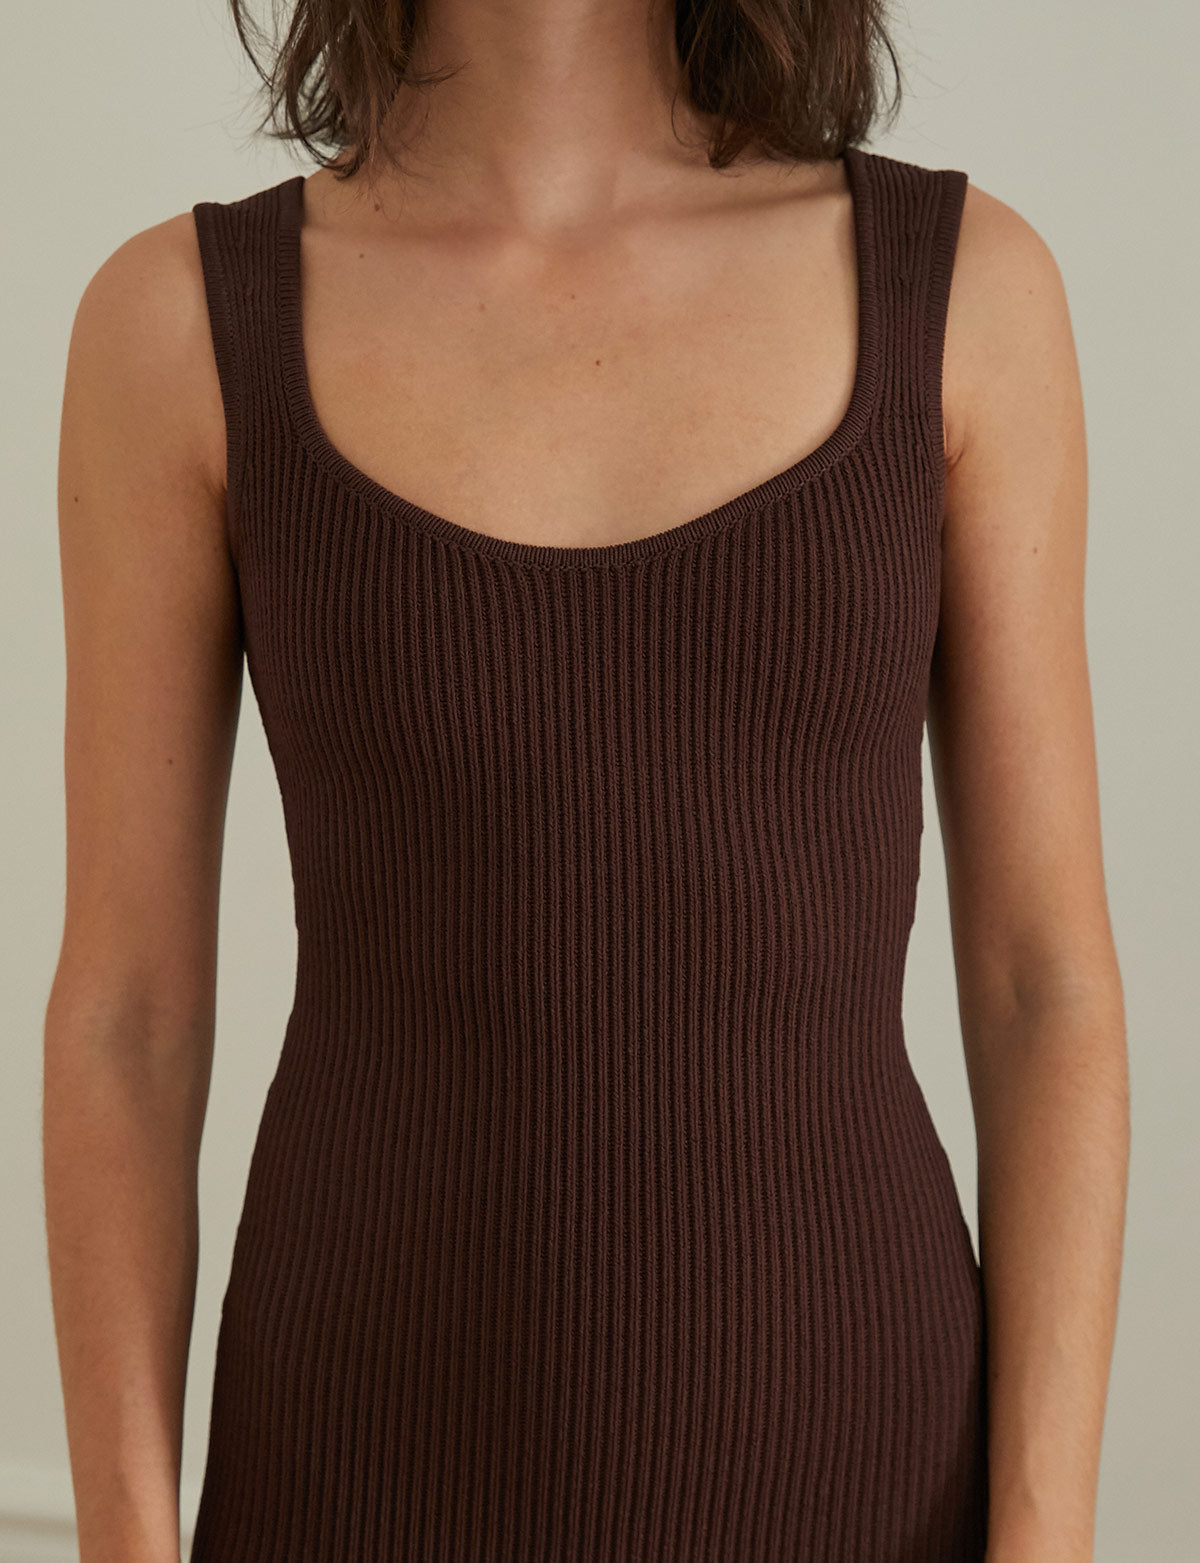 Rachel Brown Ribbed Knit Dress